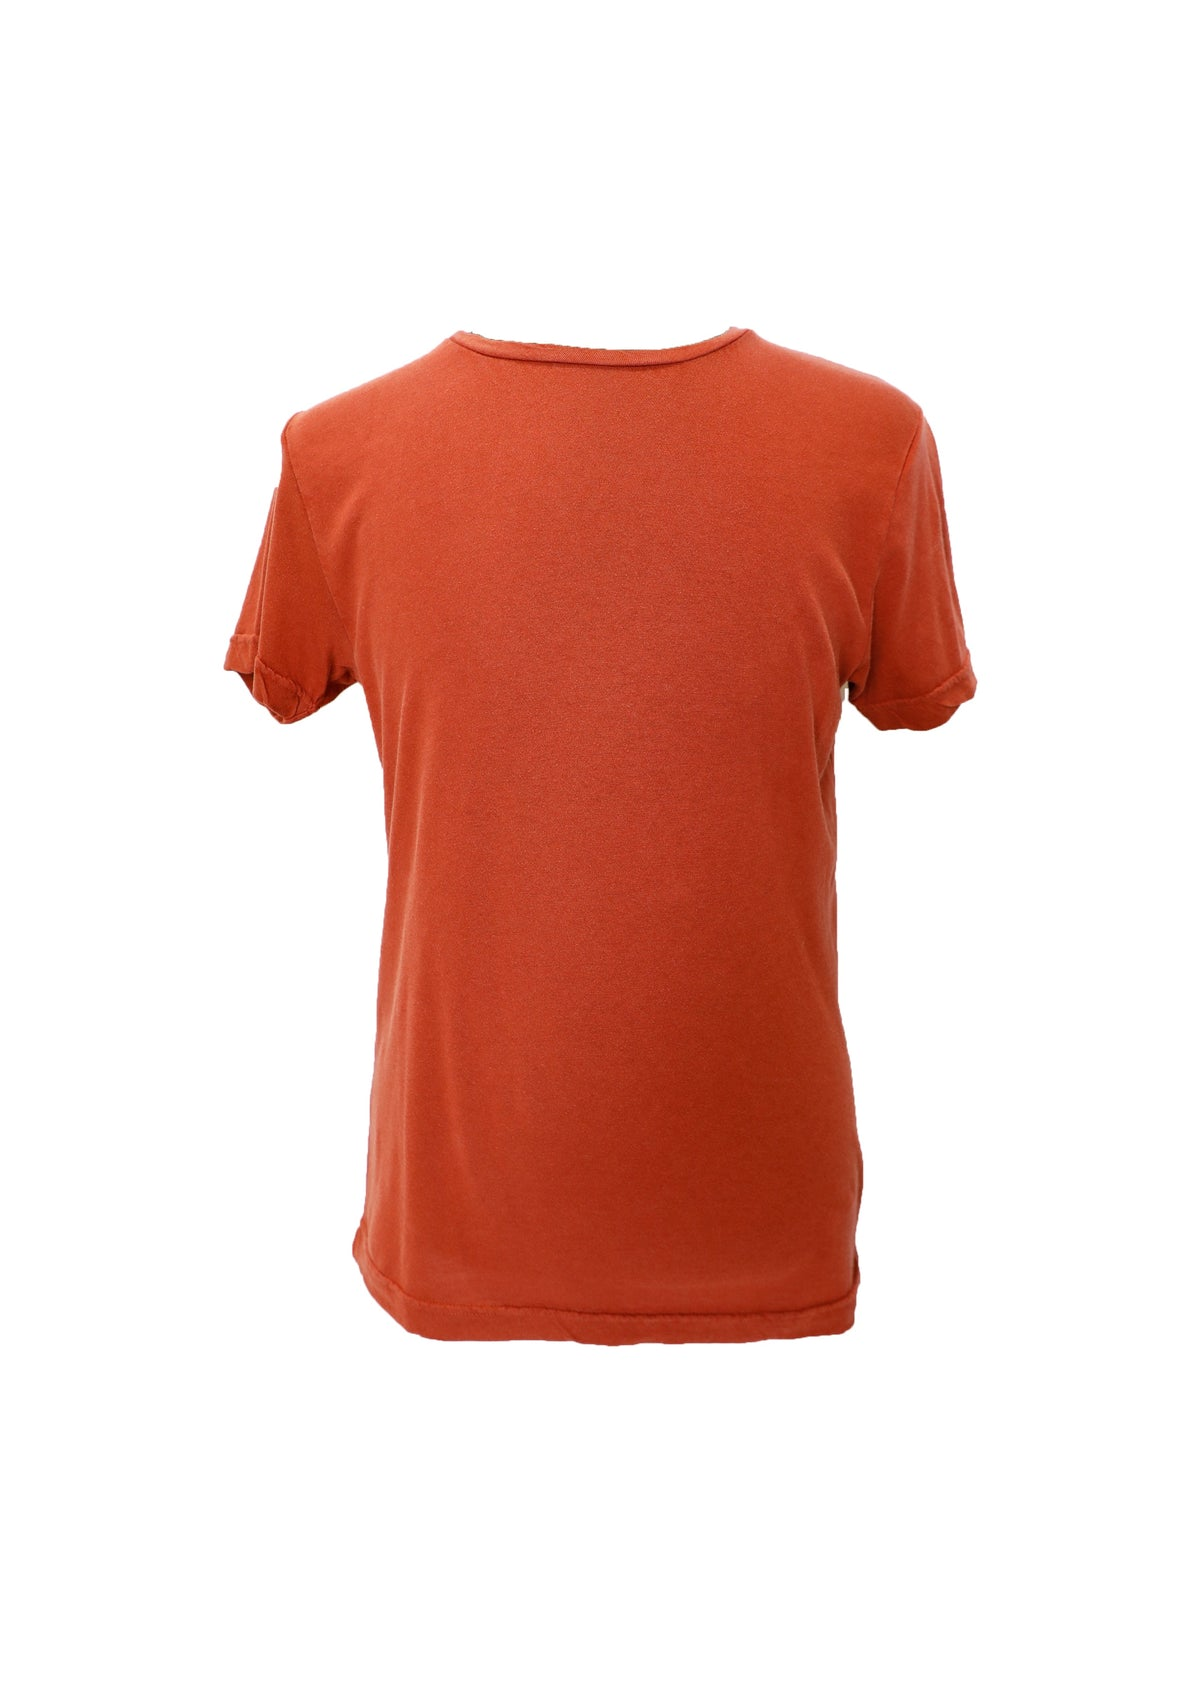 Skinwp Burnt Orange Tee